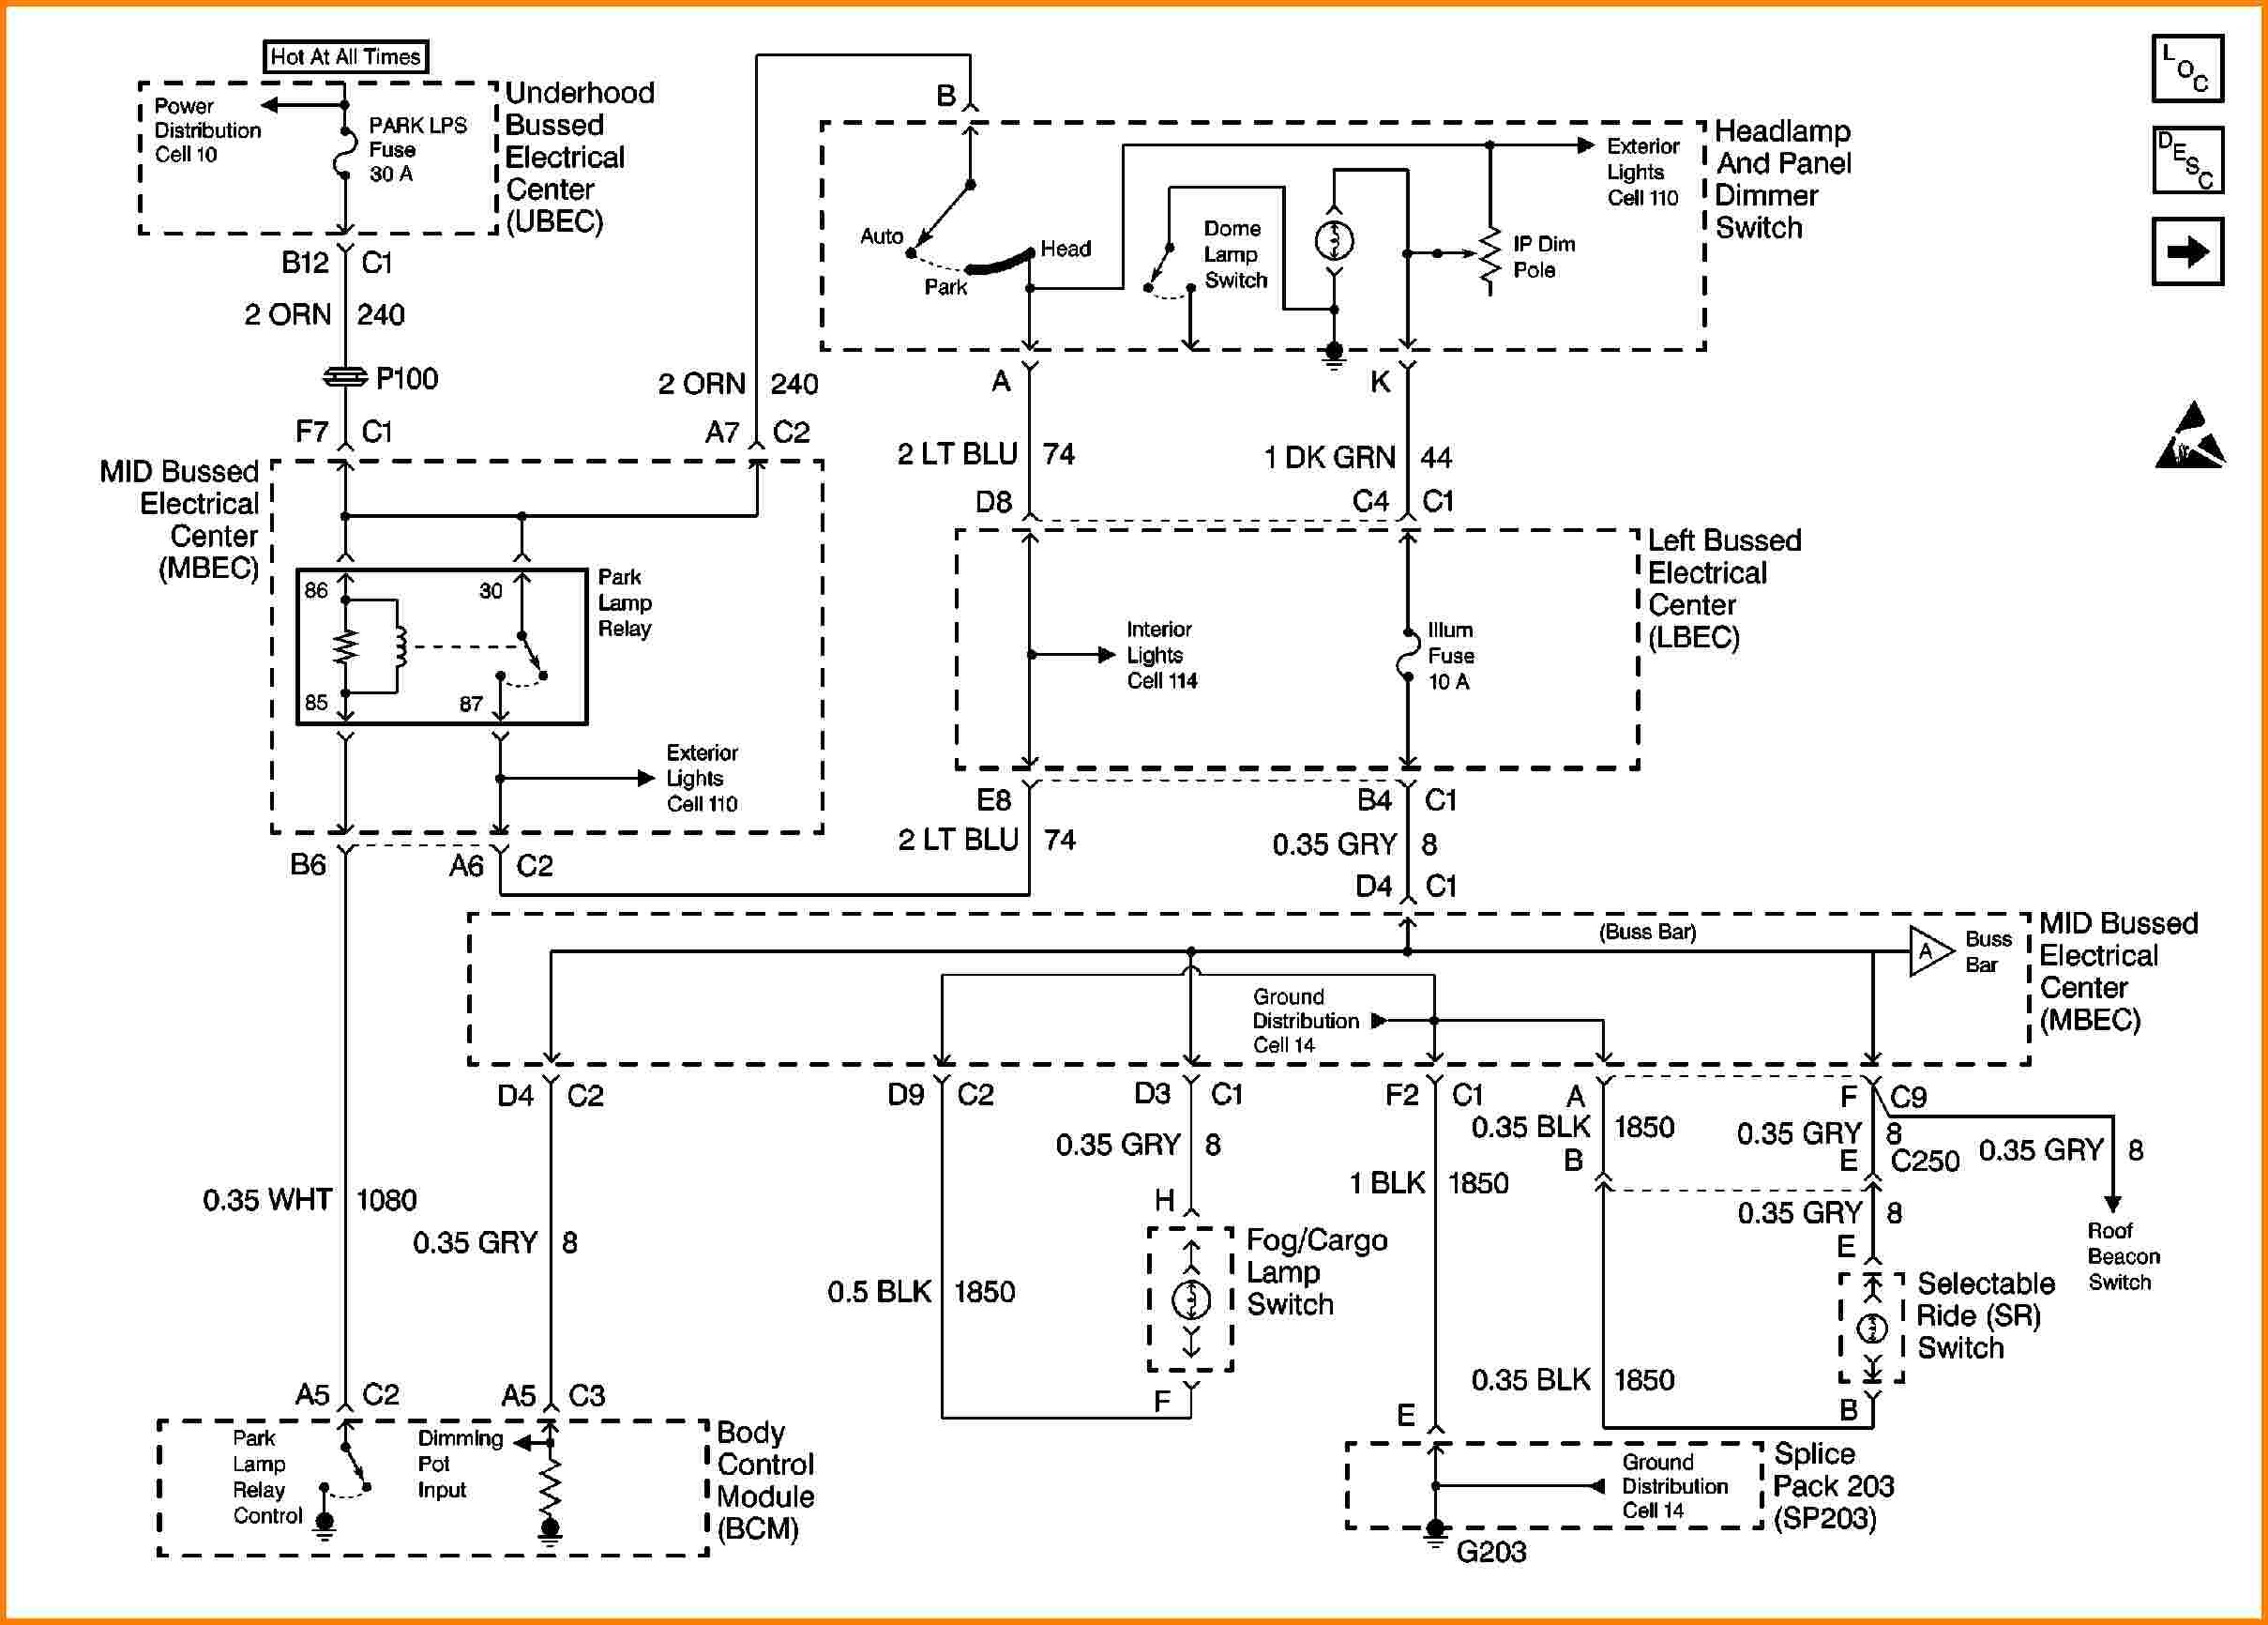 Wiring Diagram 2003 Chevy Silverado 1500 - number one wiring ... on